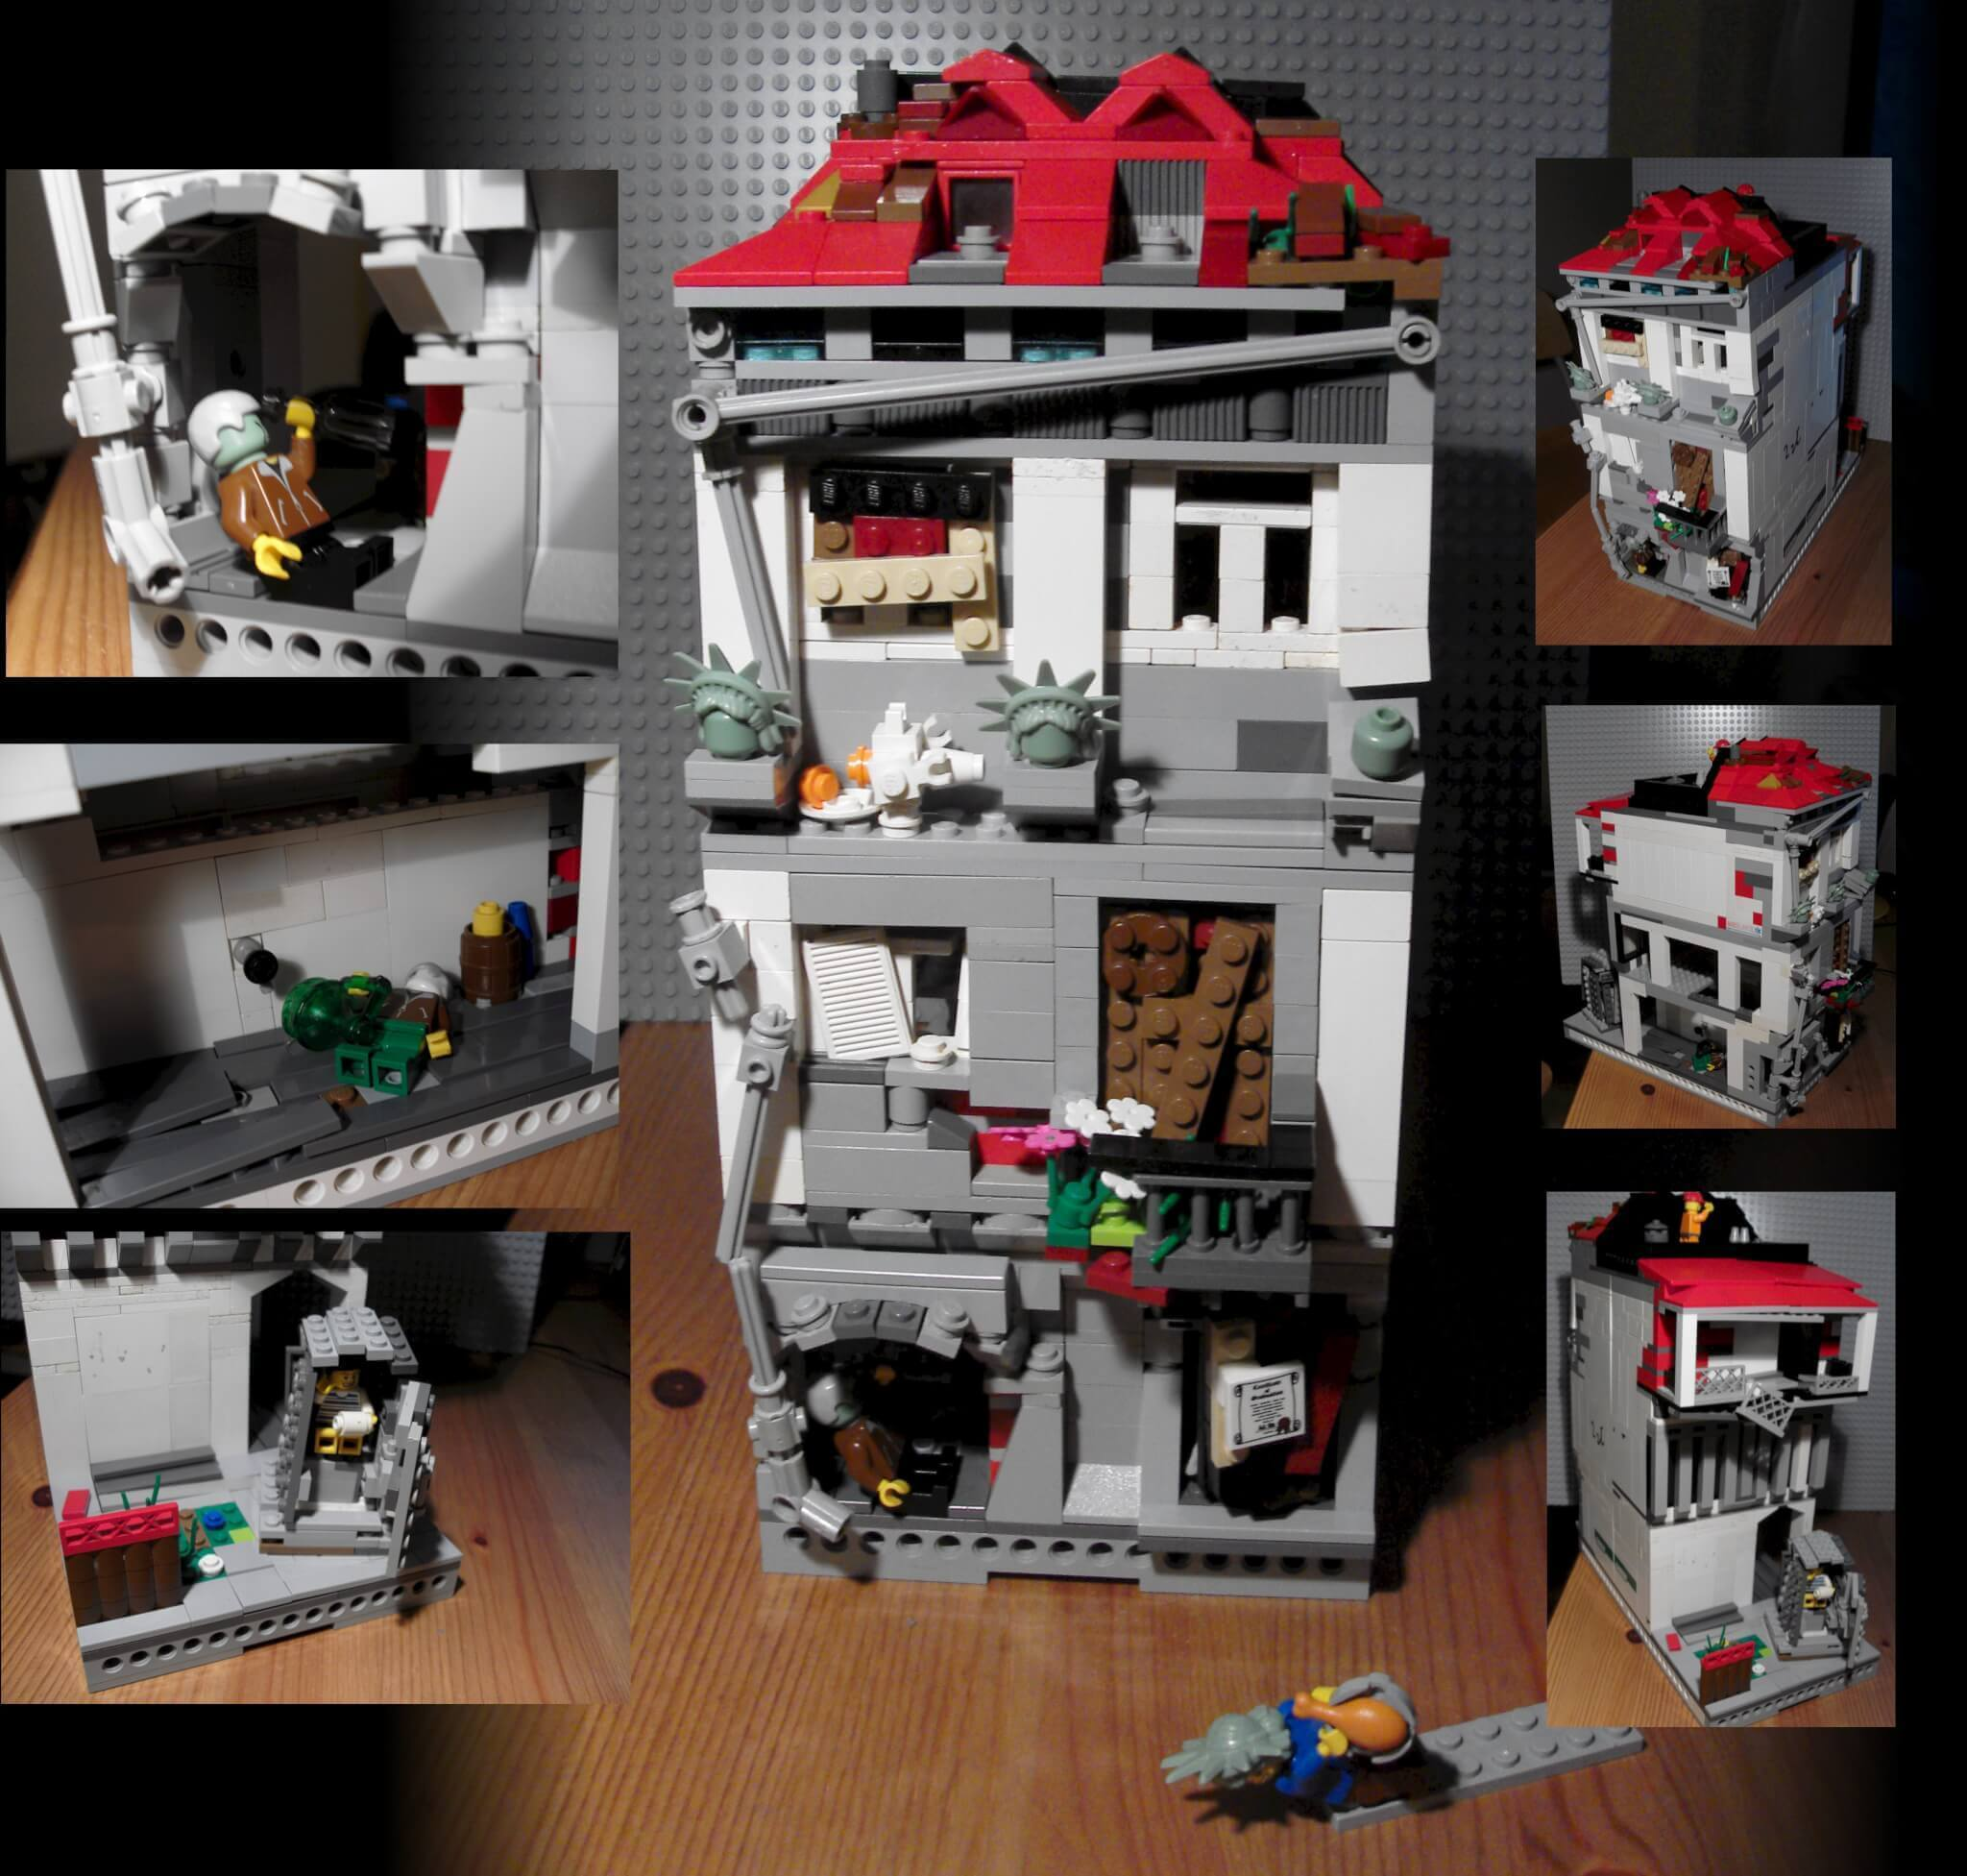 custom-lego-city-forbidden-lego-building-ideas-for-adults.jpg